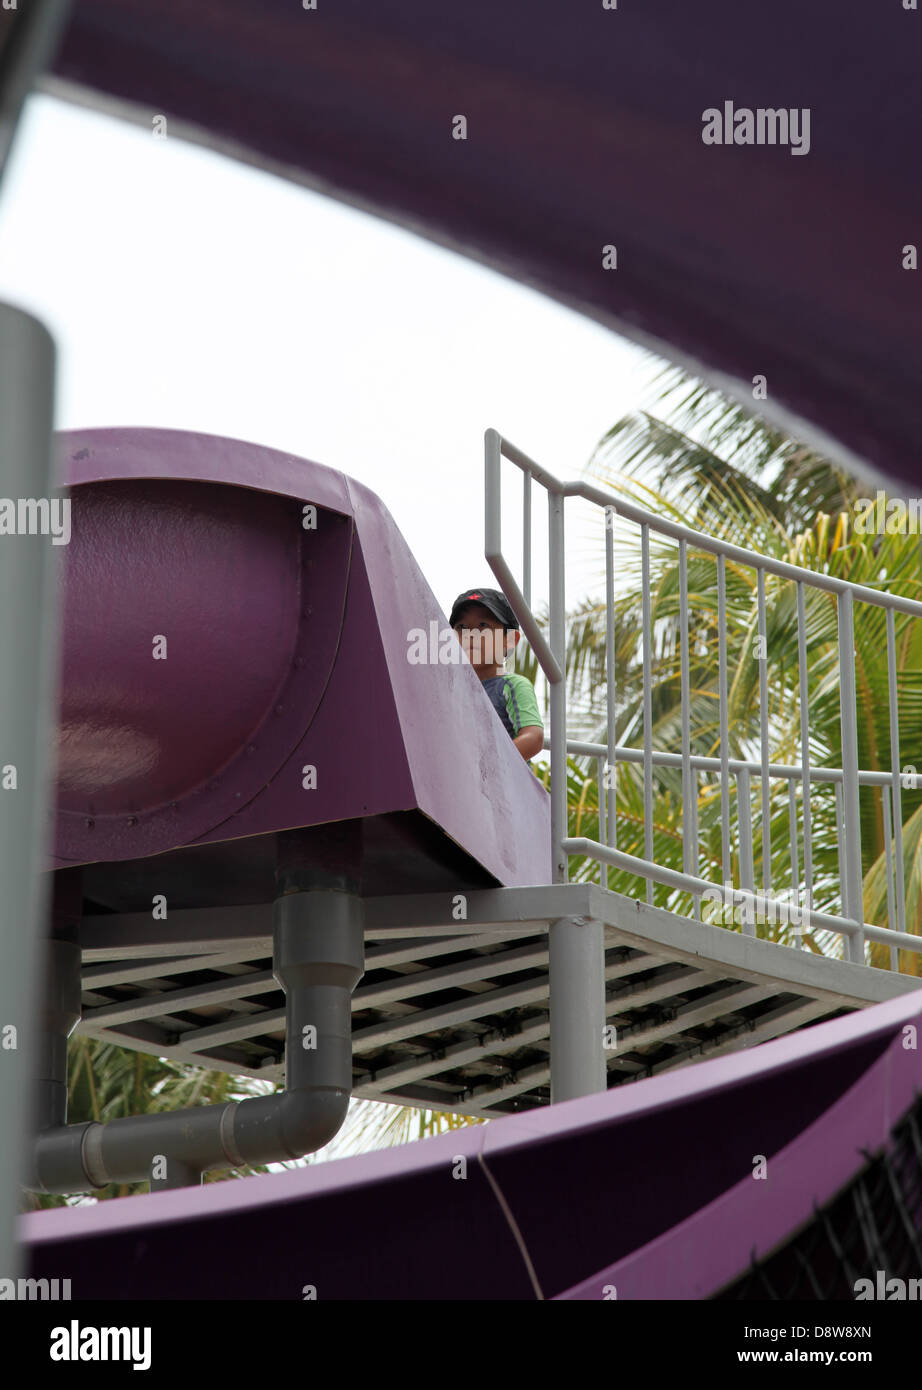 2782025e1 It s a photo of a purple plastic giant slide in a hotel resort. We ...